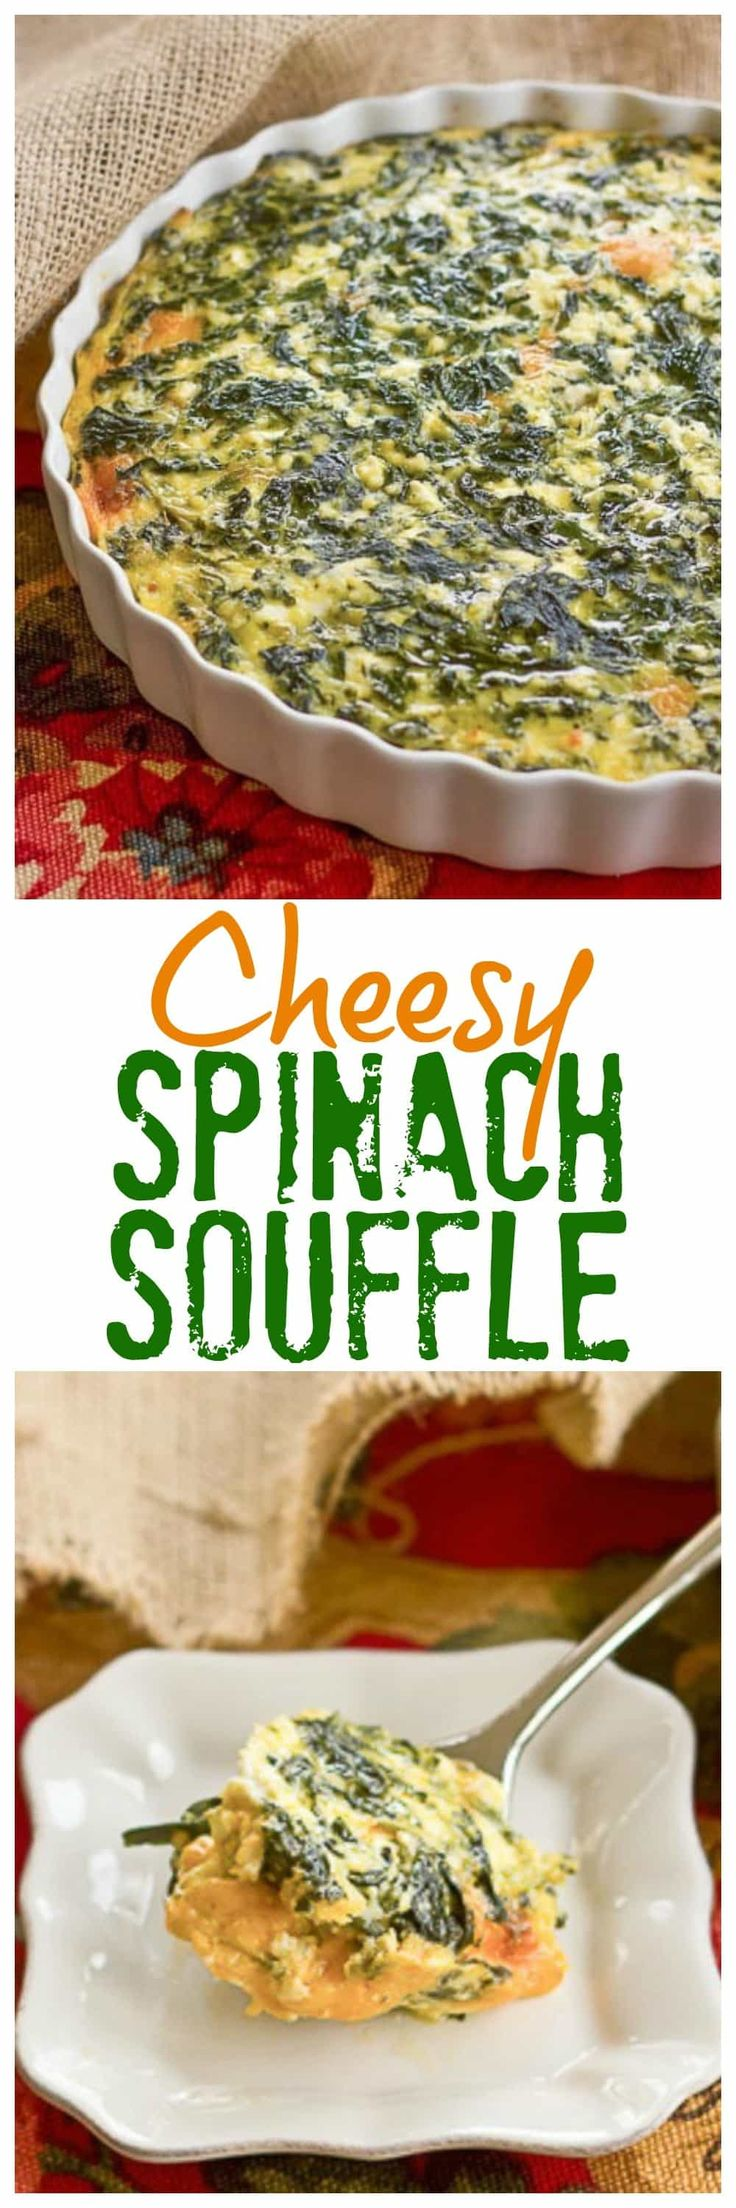 Spinach Souffle | An easy, cheesy, old-fashioned side dish from my childhood! @lizzydo